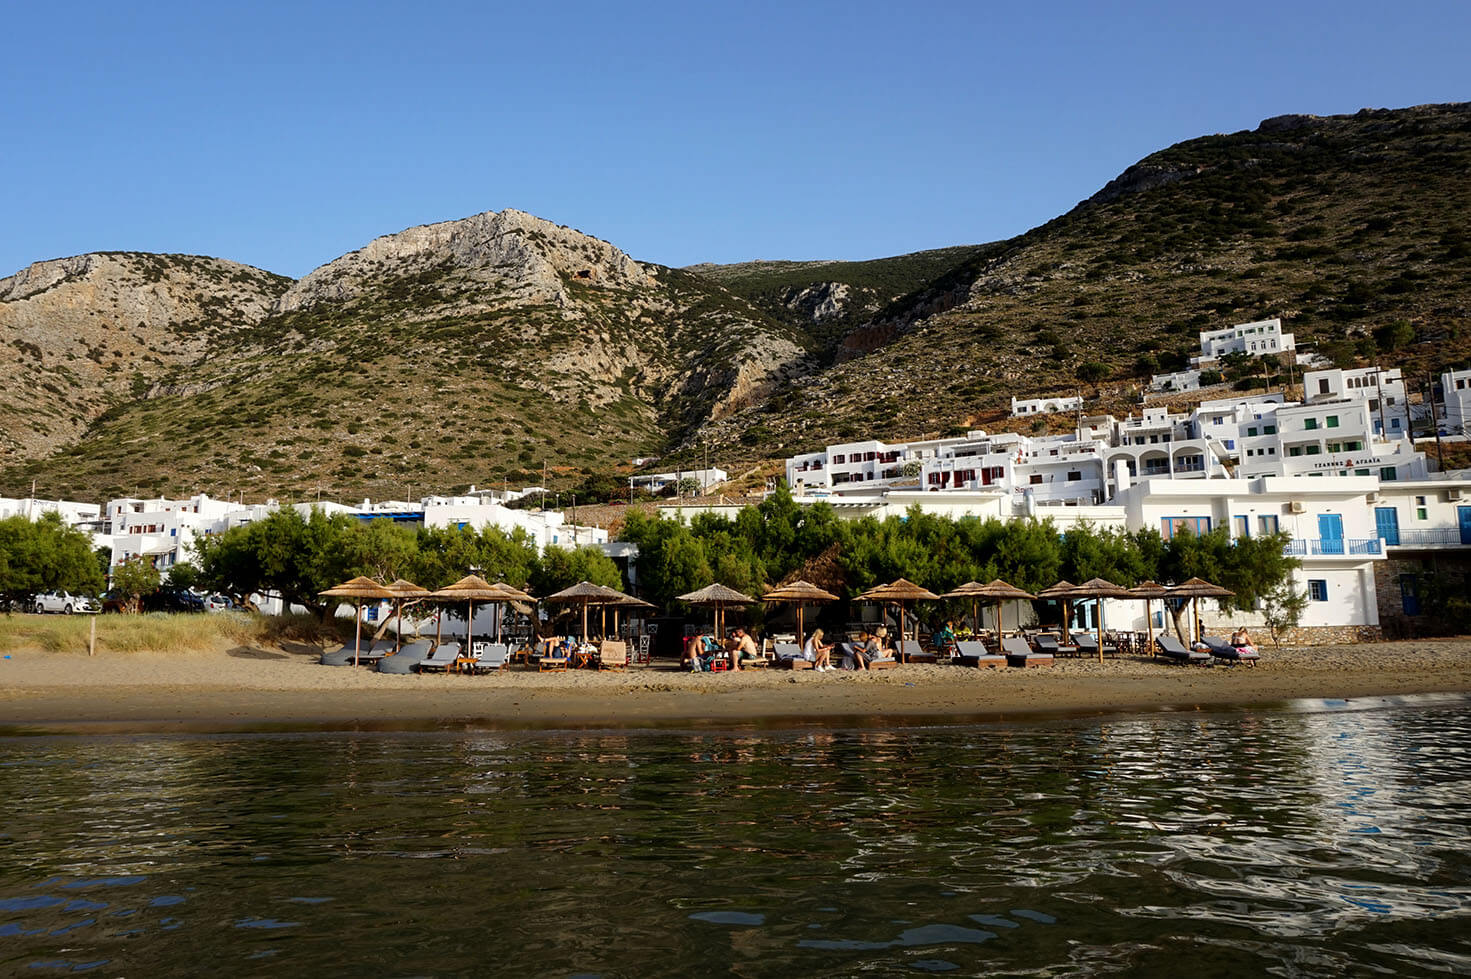 Other beaches in Sifnos